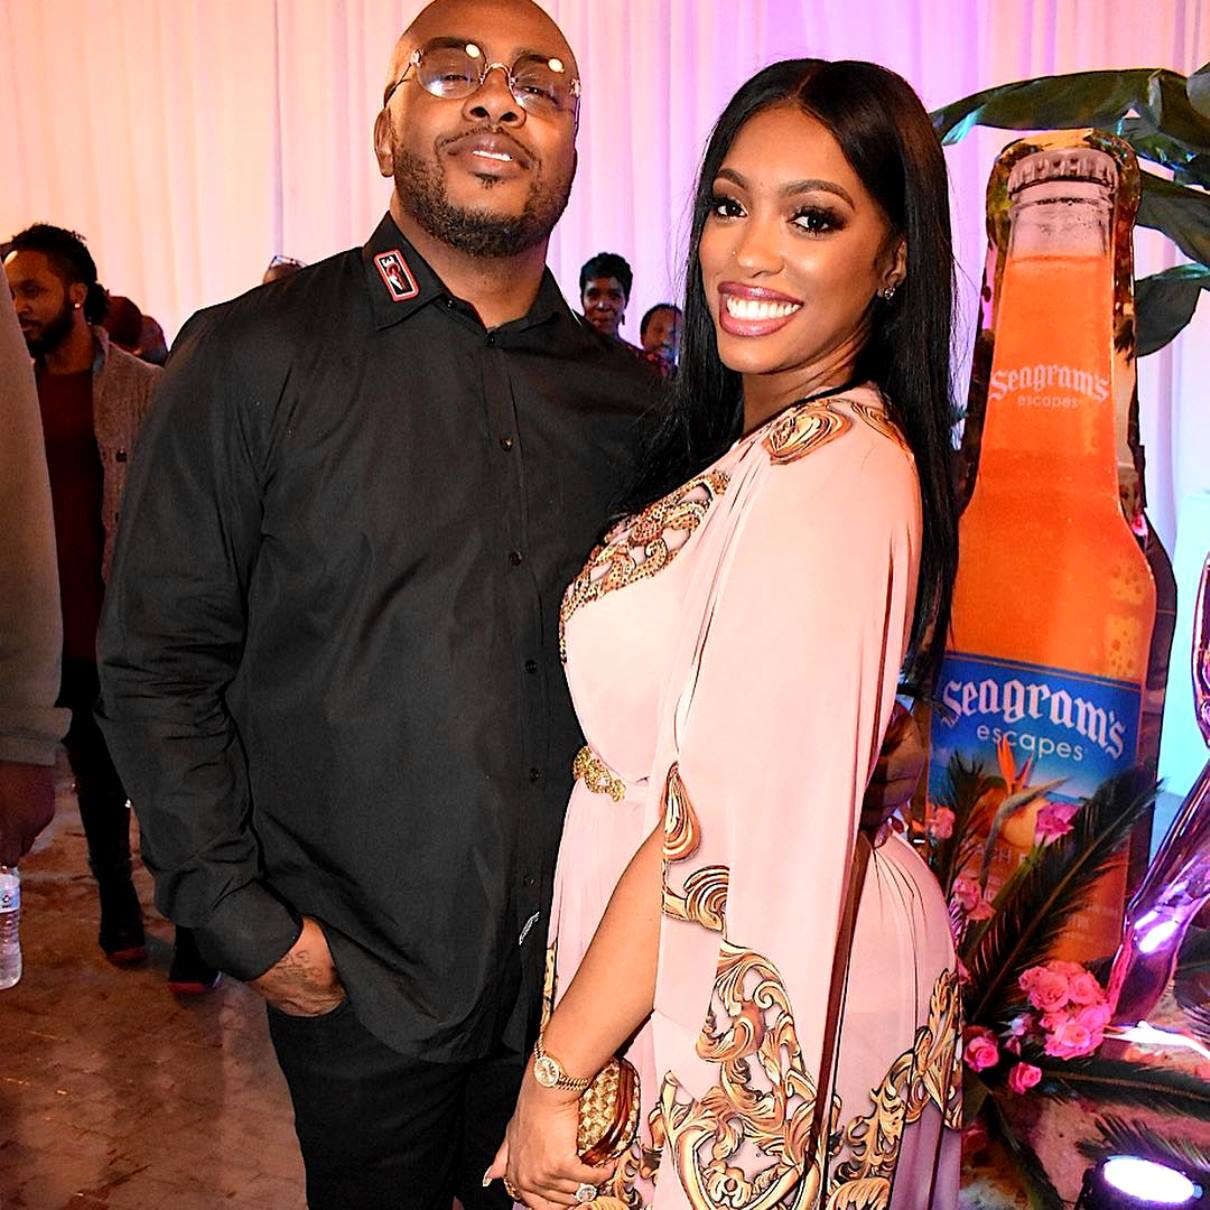 dennis-mckinley-posts-and-deletes-message-for-porsha-williams-amid-split-speculations-fans-are-not-here-for-it